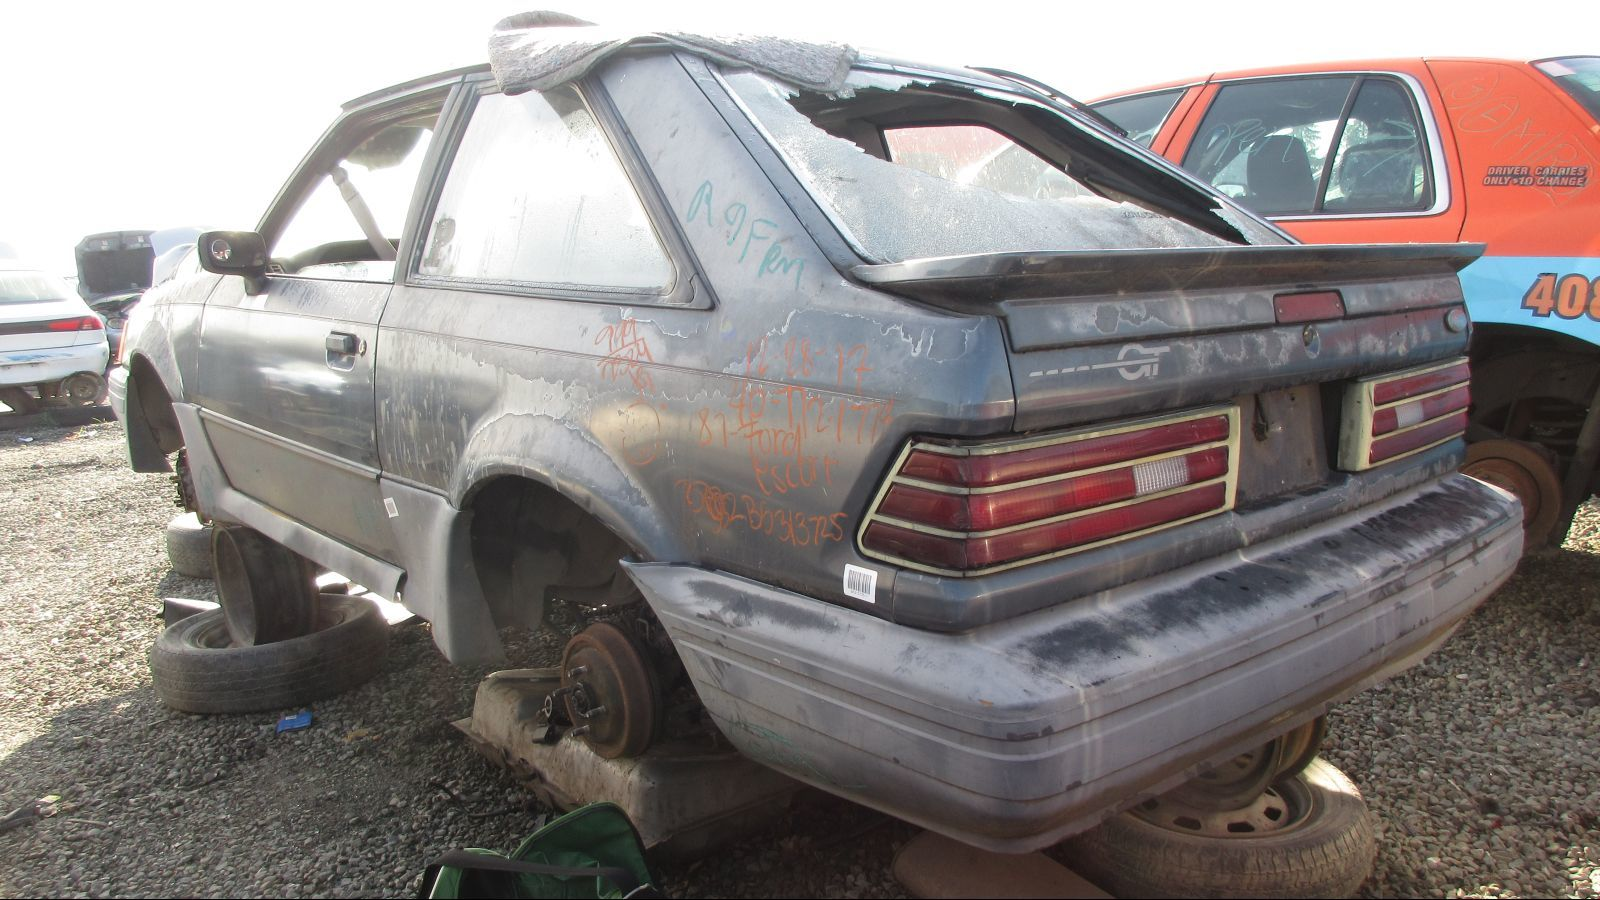 Junked 1987 Ford Escort Gt In California Wrecking Yard Photo